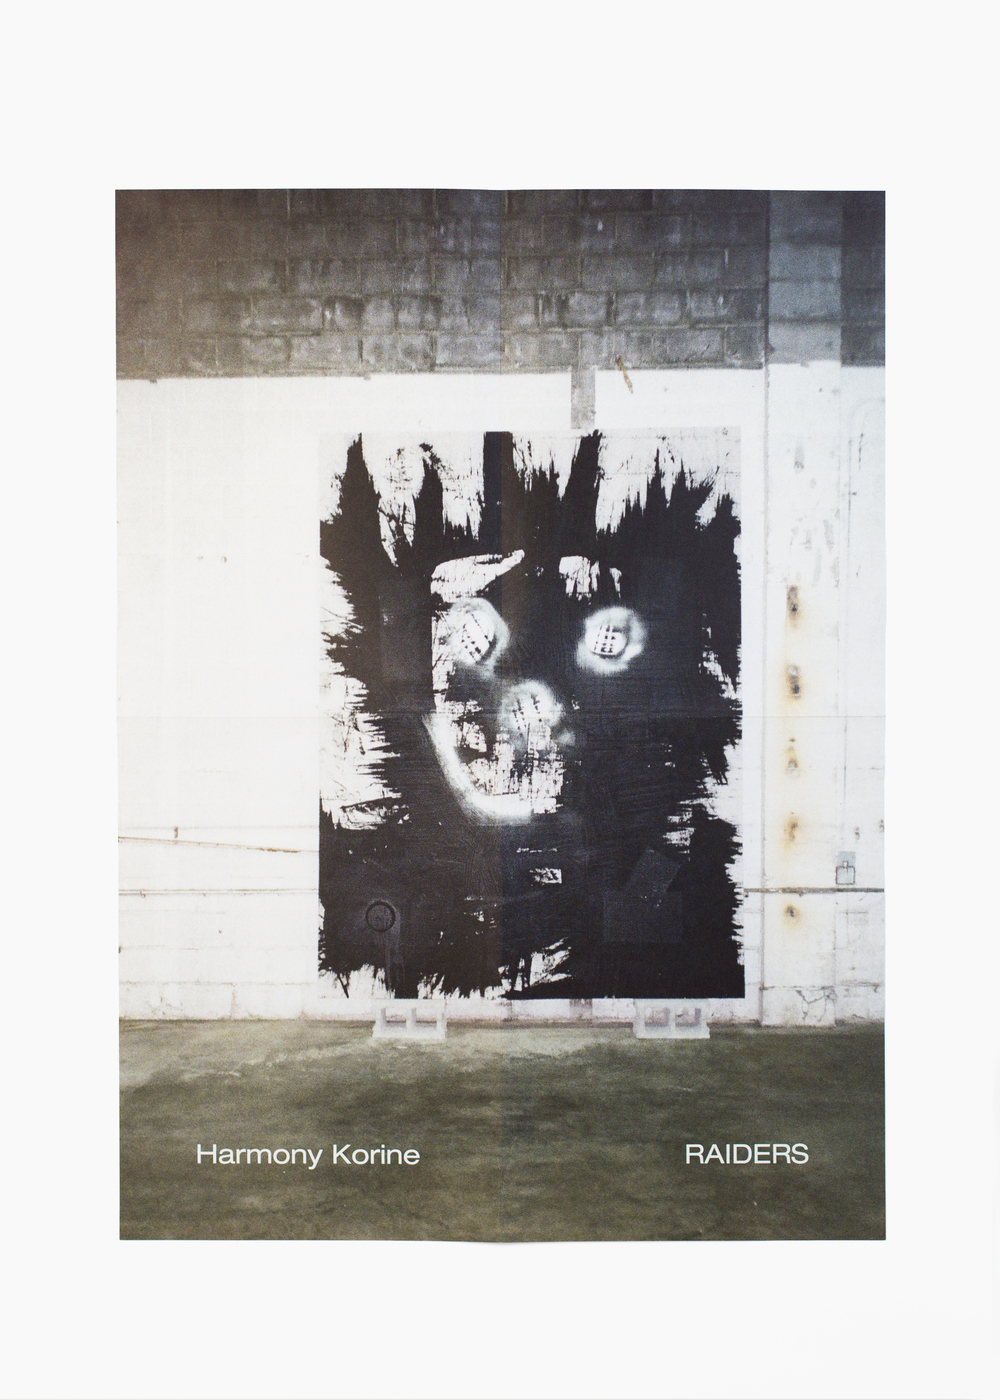 "Harmony Korine - Raiders</br>Exhibition poster 37 x 51 cm</br>Gagosian 2015</br>€50 <a href=""https://www.paypal.com/cgi-bin/webscr?cmd=_s-xclick&hosted_button_id=JKR5EVKWMFXWG"">Add to Cart</a>"